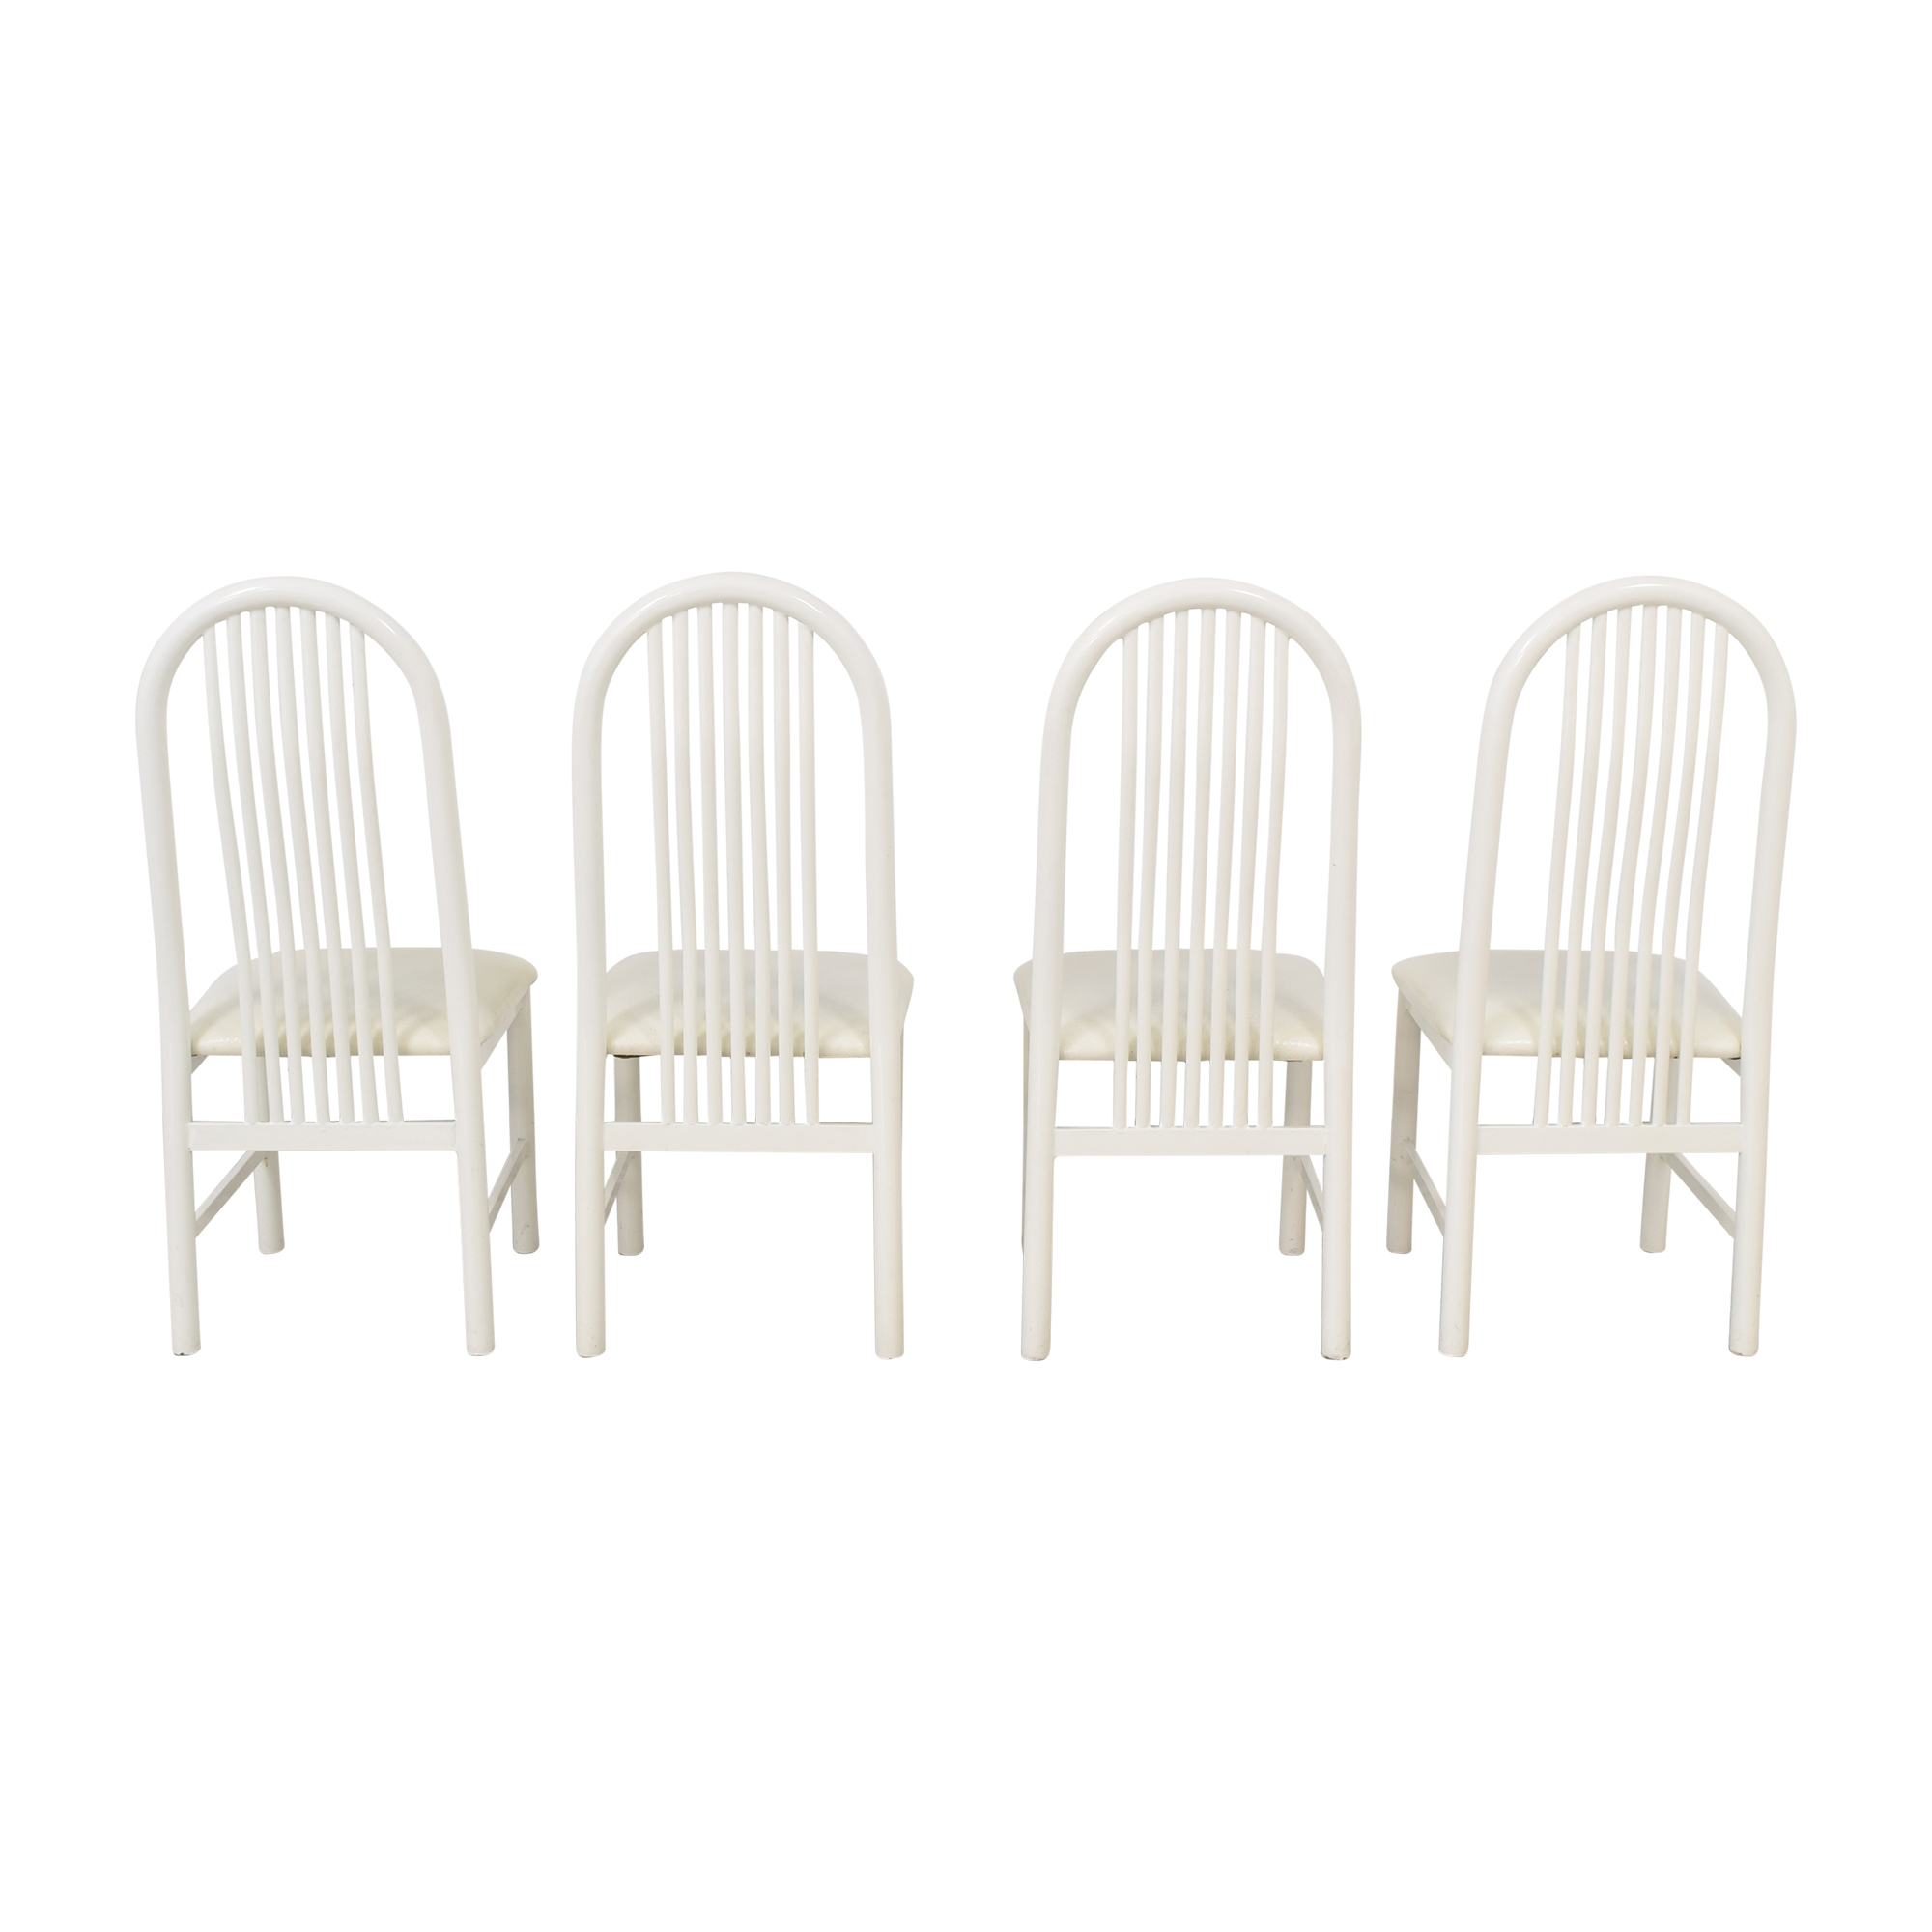 Arch Back Dining Chairs / Chairs